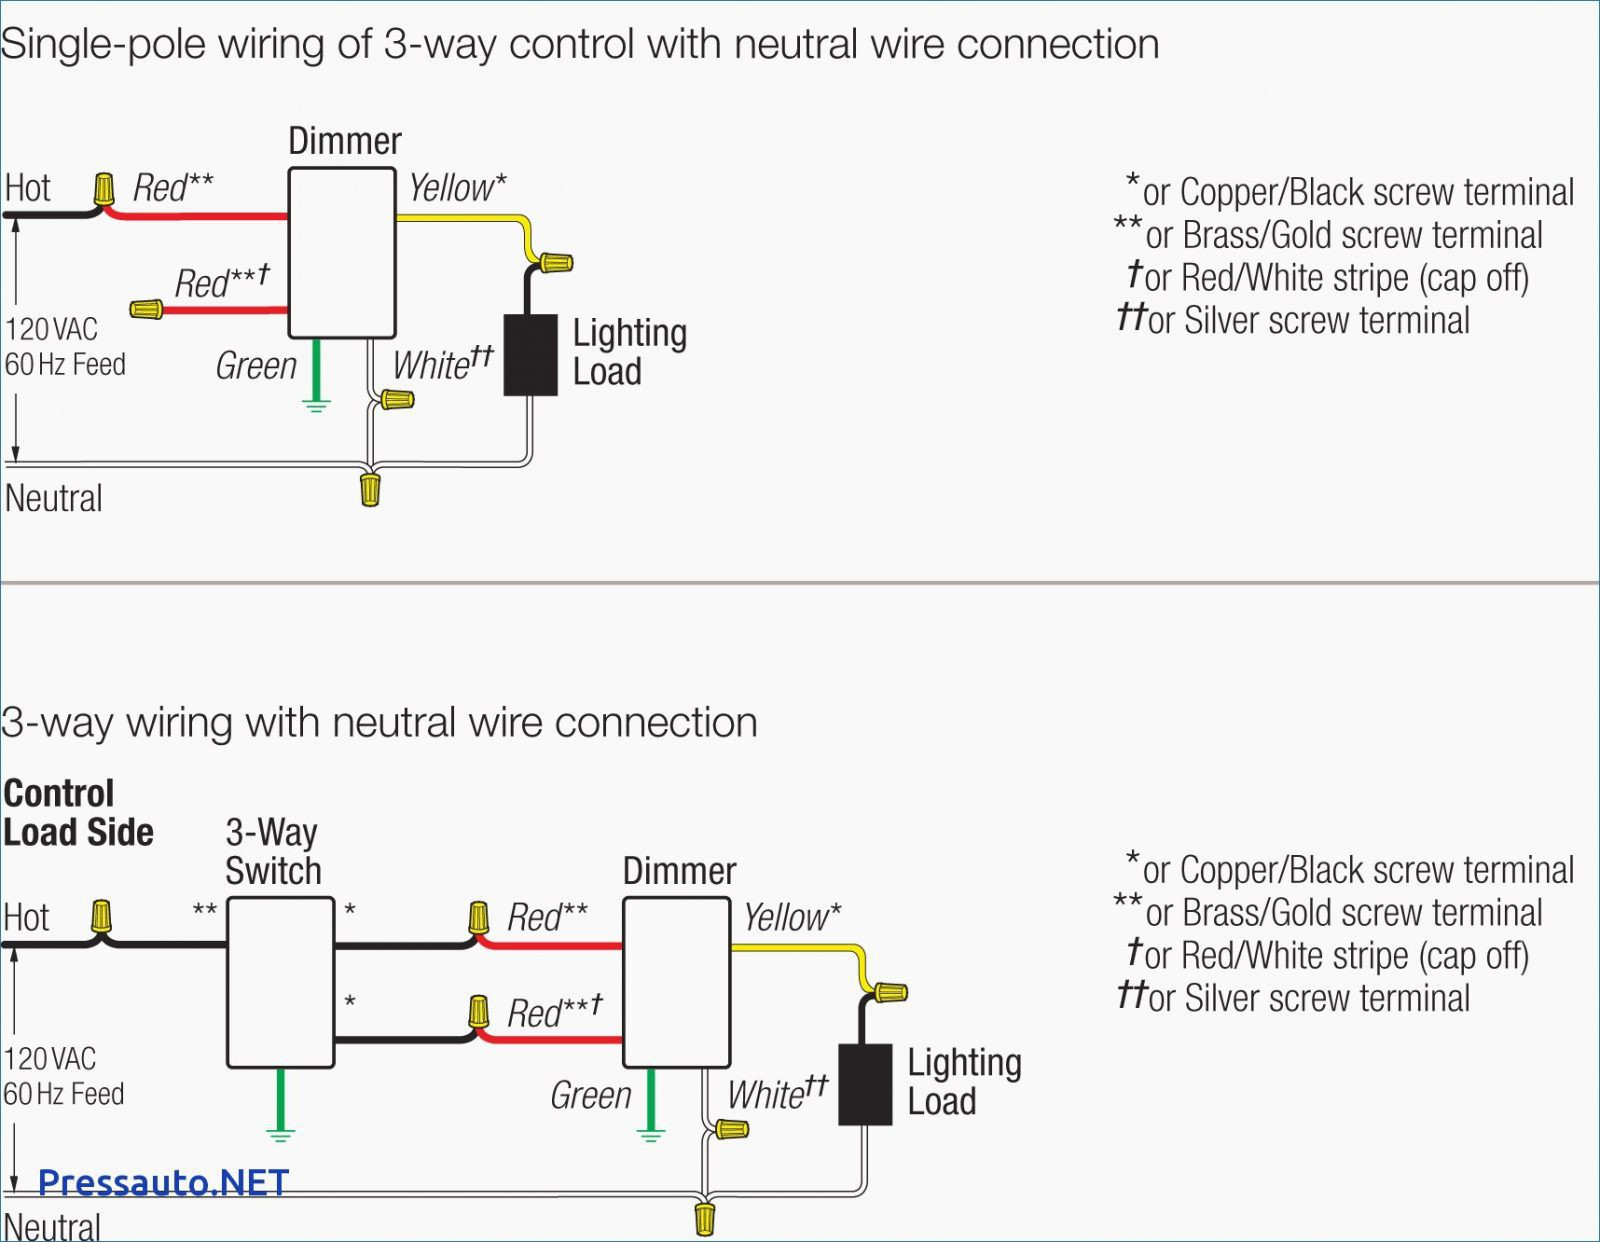 Universal Ballast Wiring Diagrams | Wiring Liry on 2 light ballast wiring diagrams, fluorescent ballast wiring diagrams, workhorse ballast wiring diagrams, osram ballast wiring diagrams, emergency ballast wiring diagrams, closet grow room diagrams, universal generator wiring diagrams, hps ballast wiring diagrams, electronic ballast diagrams, universal ballasts for fluorescent lights, universal lighting ballast hp's 1503a, advance ballast wiring diagrams, lamp ballast wiring diagrams, transformer connection diagrams, universal headlight switch wiring diagram, hid ballast wiring diagrams, sign ballast wiring diagrams, universal ballasts cross reference, fluorescent ceiling light fixtures diagrams,